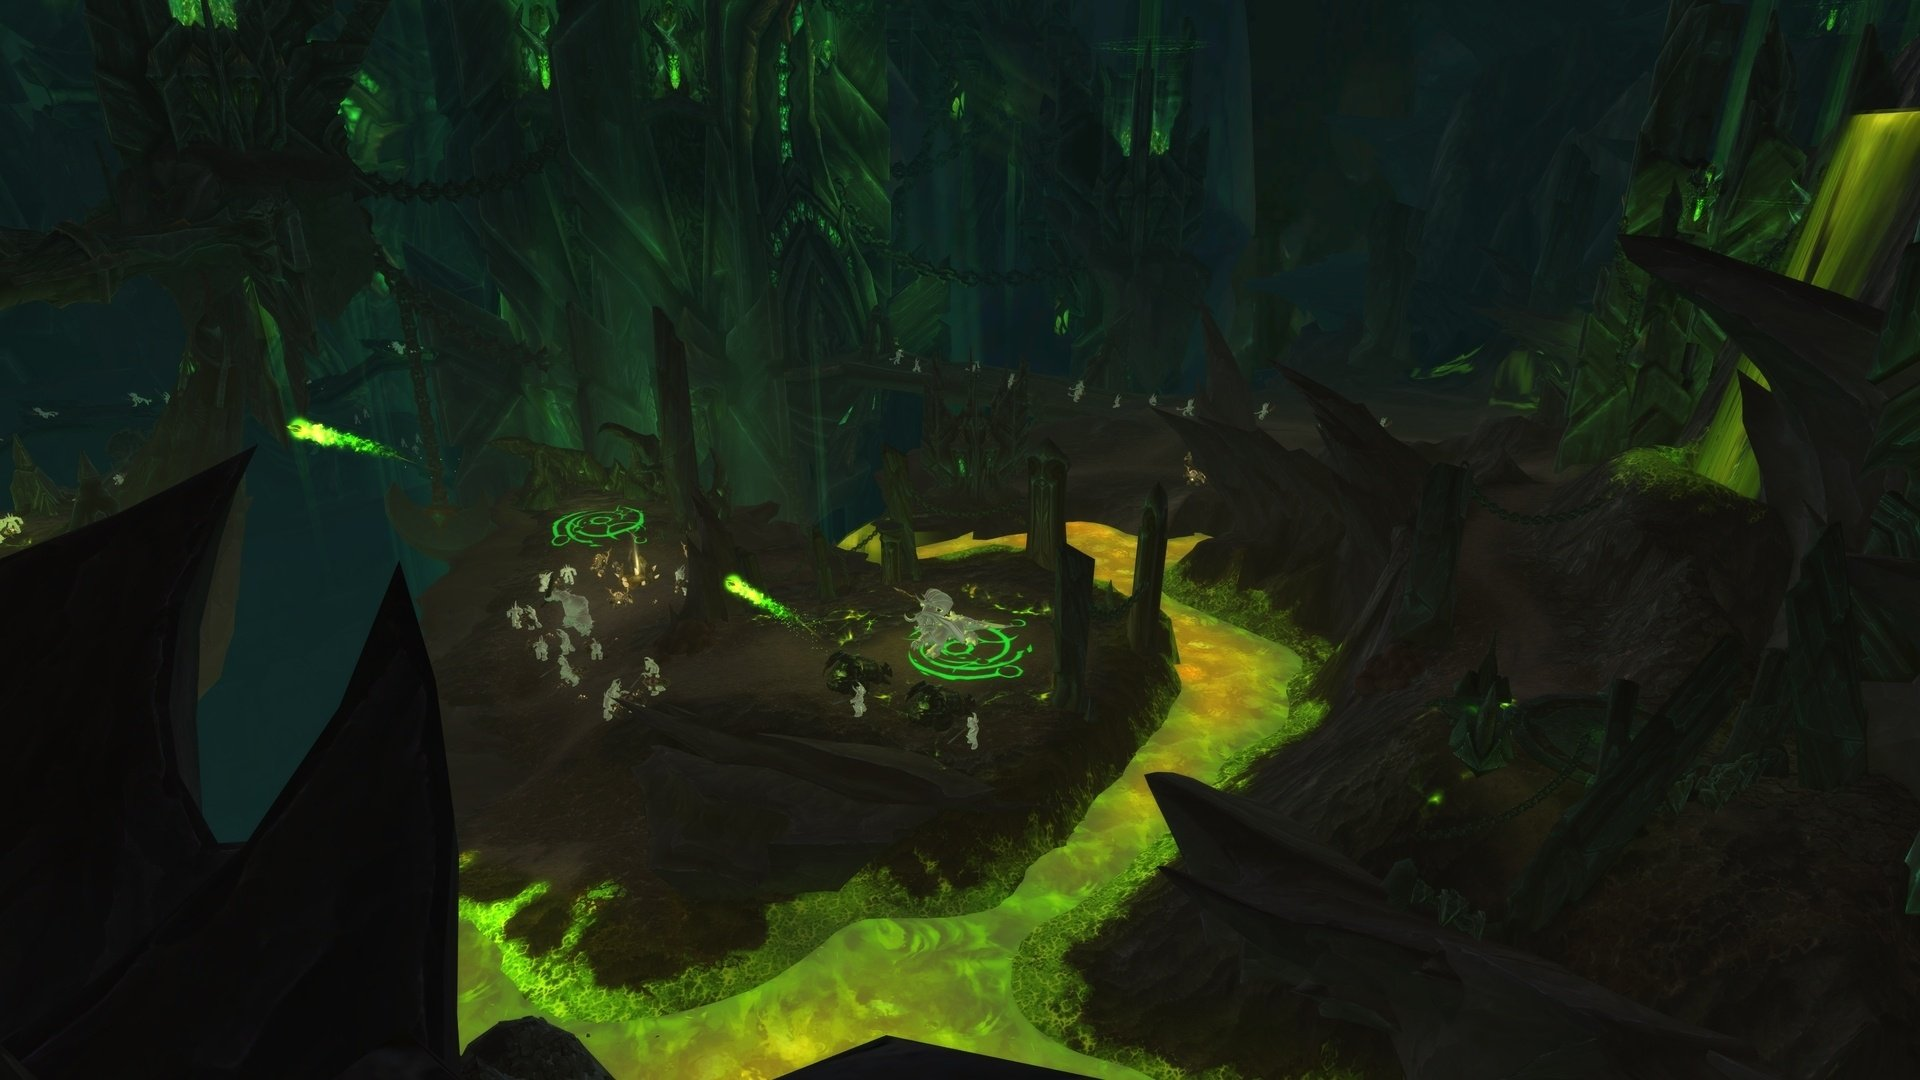 Battle for Azeroth descends on World of Warcraft this summer